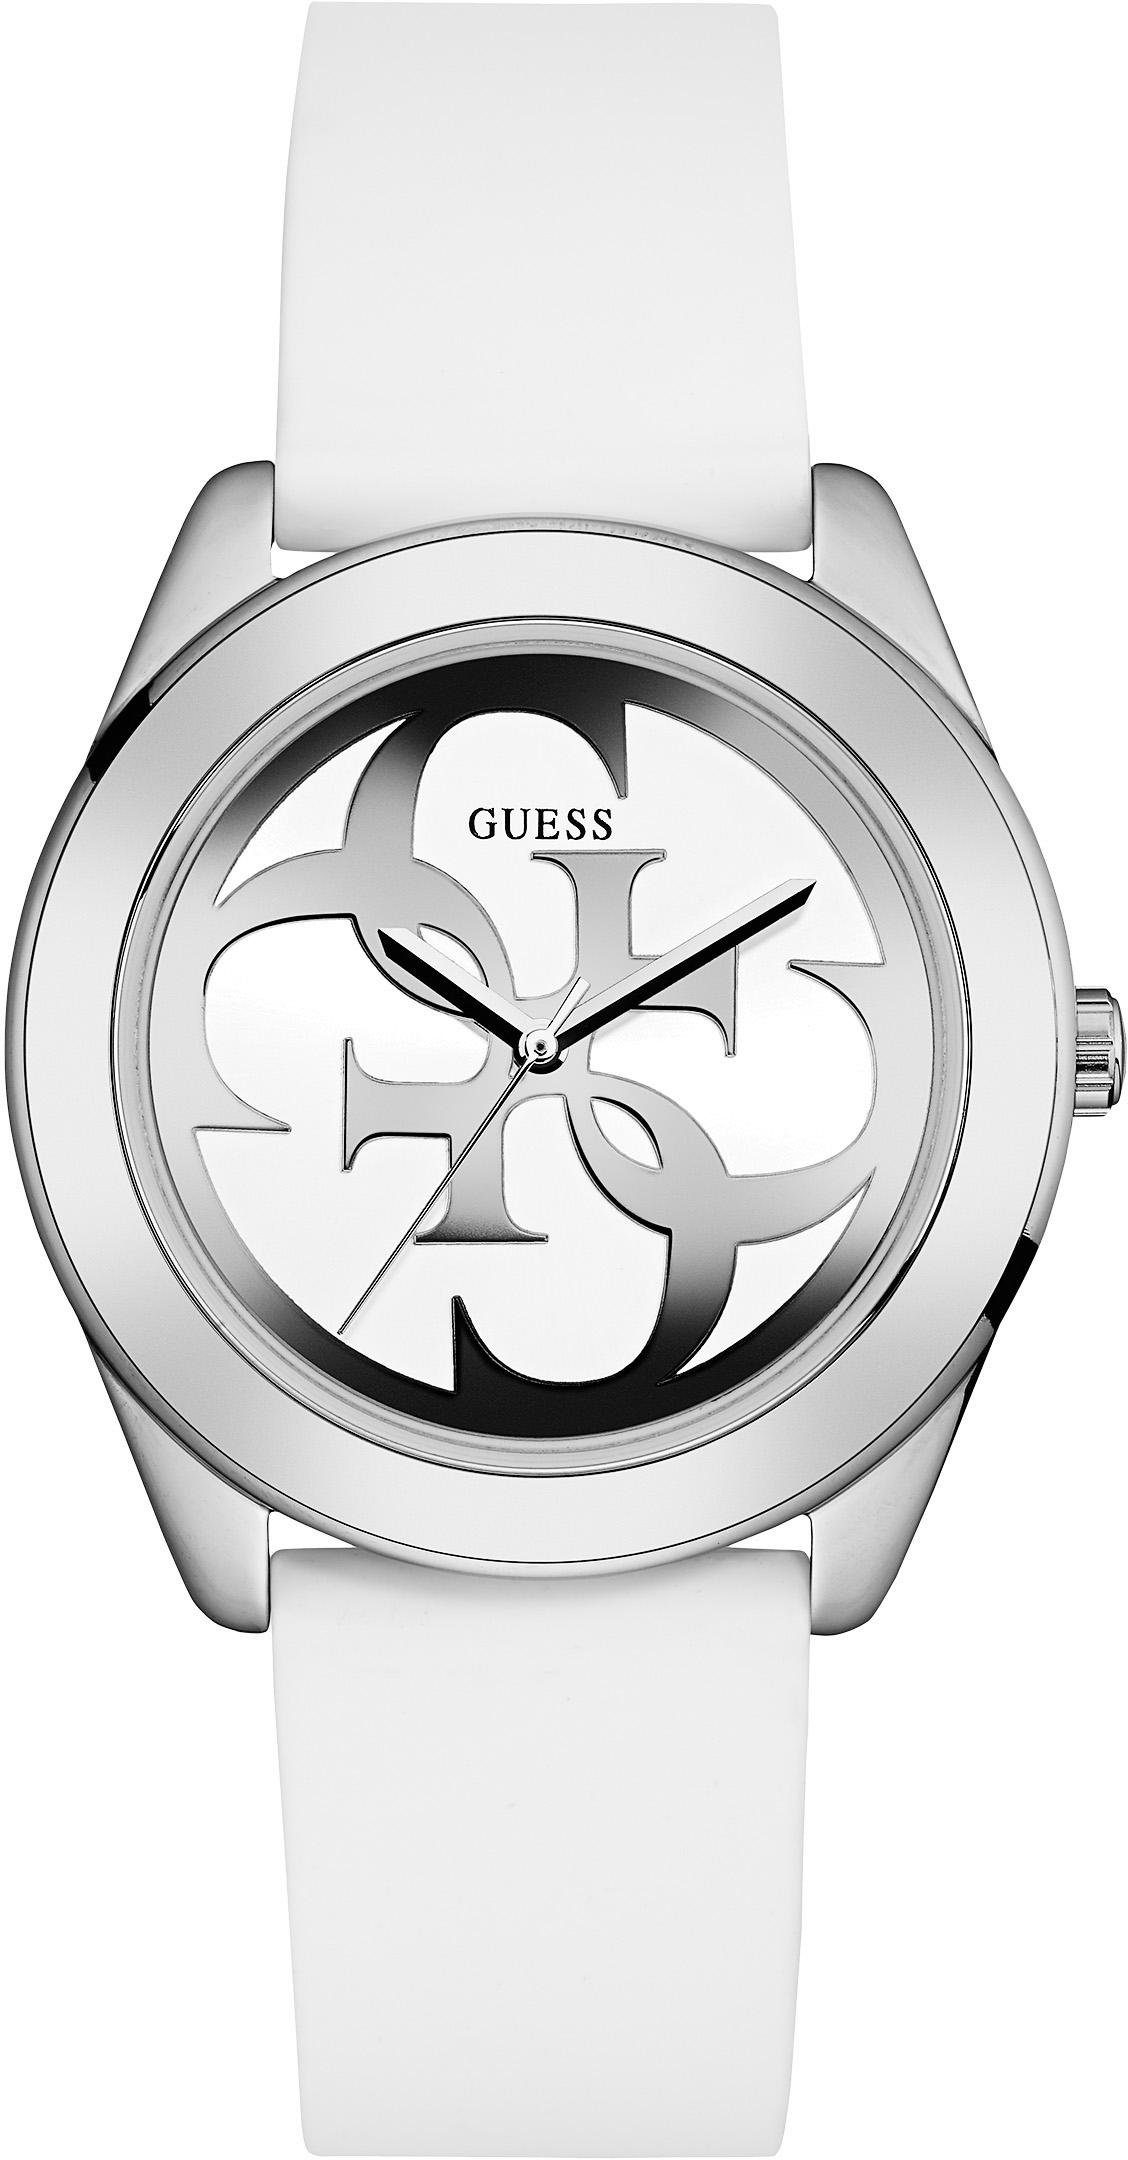 Guess Quarzuhr »G TWIST, W0911L1«